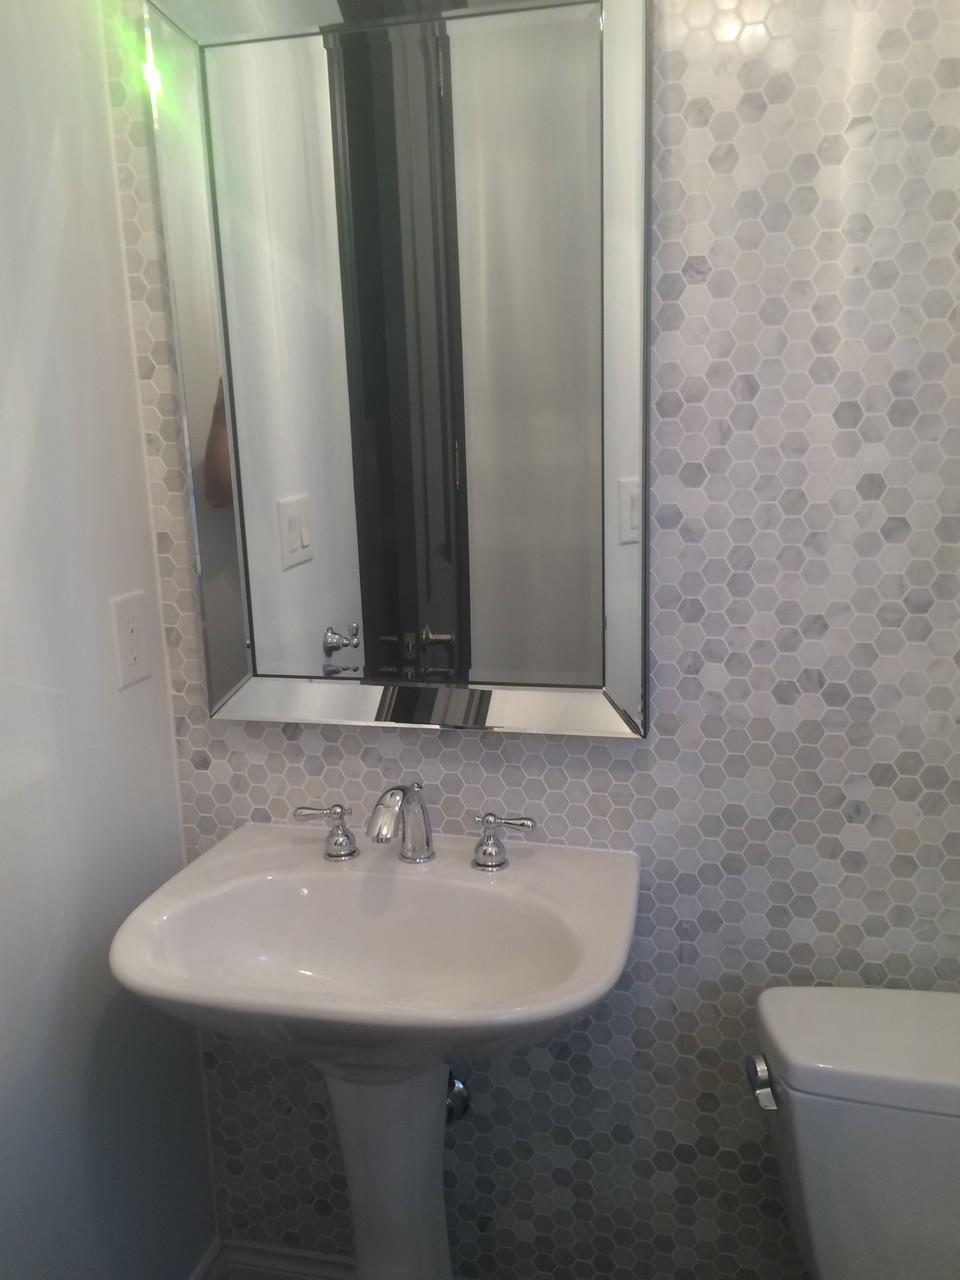 Powder Room Upgrade: Repaint, New Tile Mosaic Installation and refinishing